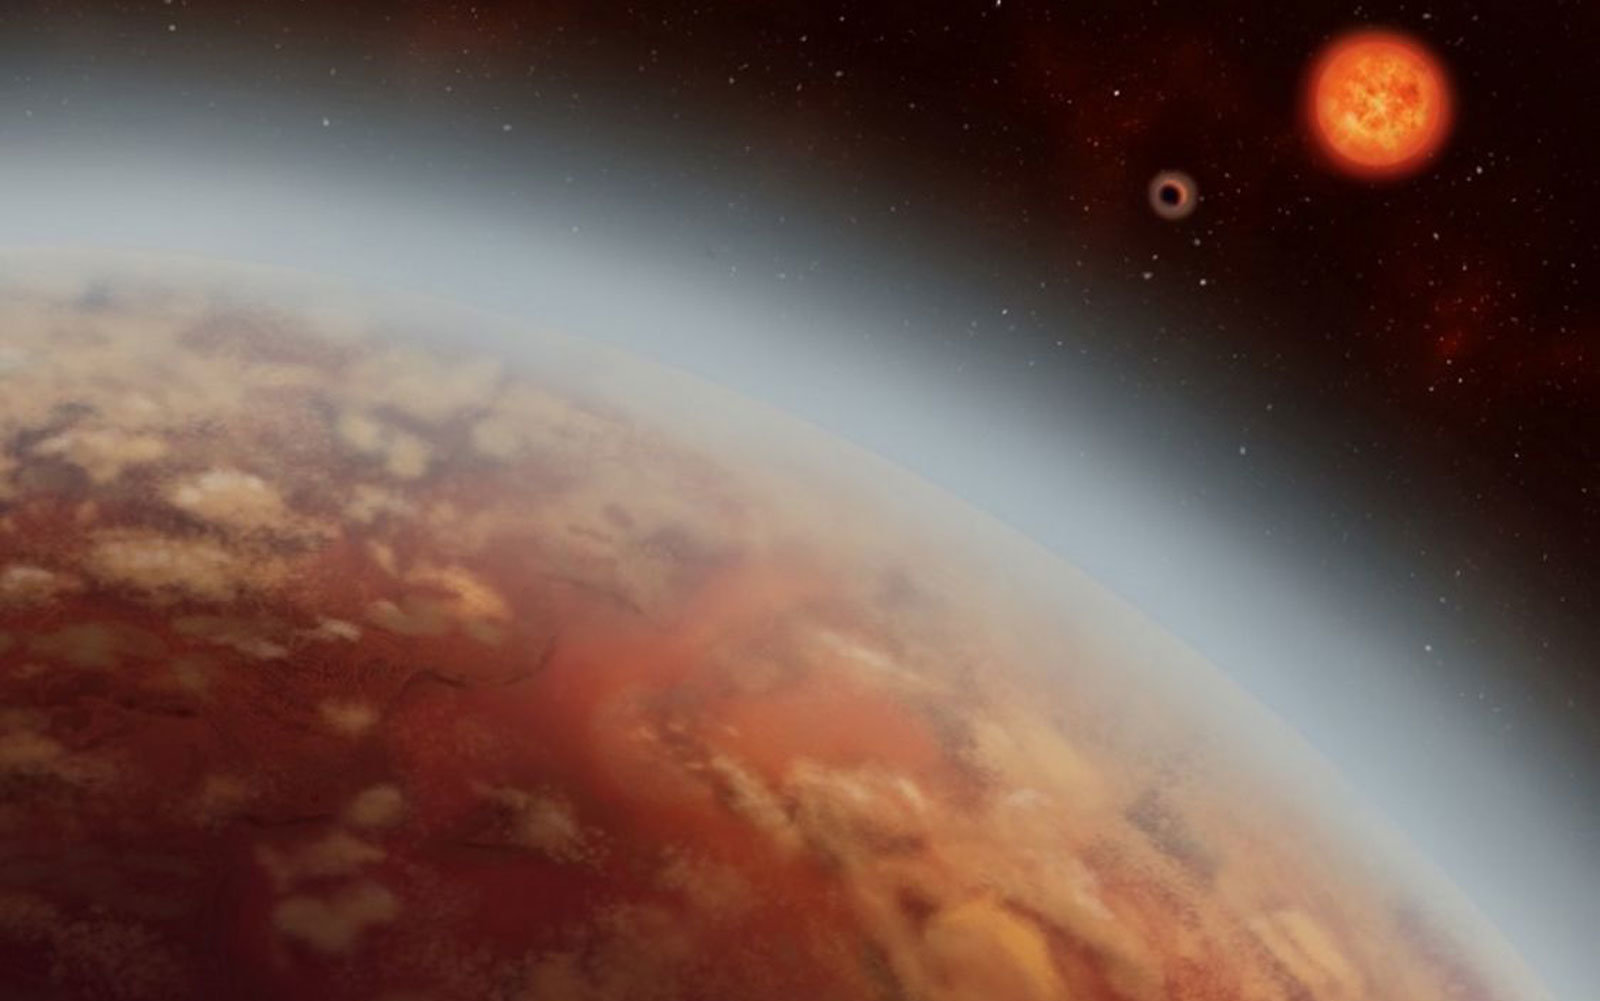 Possible alien life may be present on Giant Super Earth, researchers say